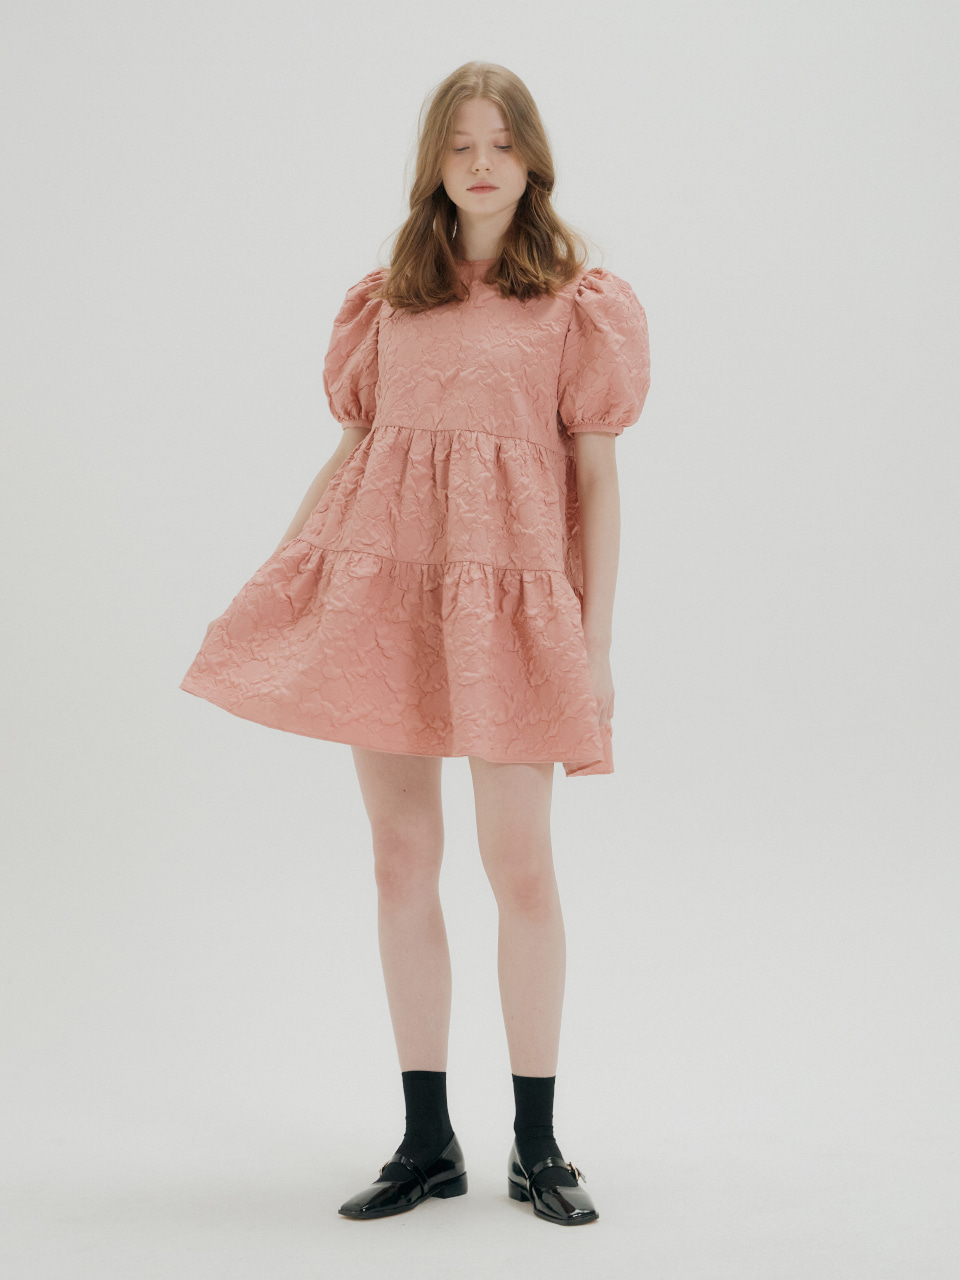 [예약주문_4/21 출고 예정]ROSE PATTERN MINI DRESS_PINK